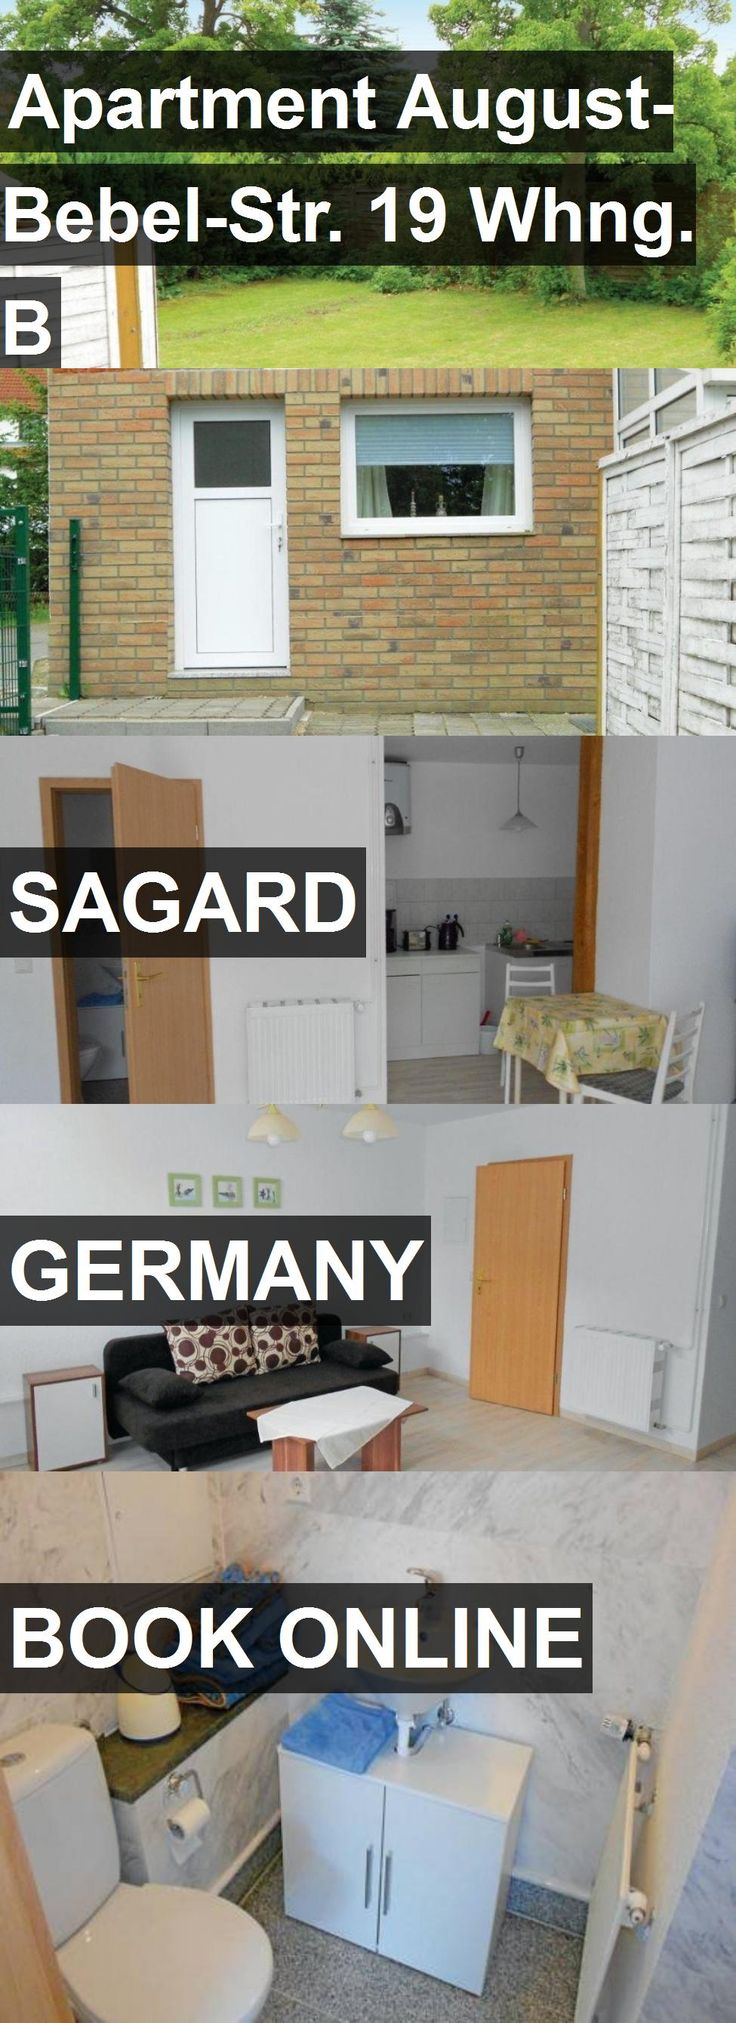 Hotel Apartment August-Bebel-Str. 19 Whng. B in Sagard, Germany. For more information, photos, reviews and best prices please follow the link. #Germany #Sagard #ApartmentAugust-Bebel-Str.19Whng.B #hotel #travel #vacation